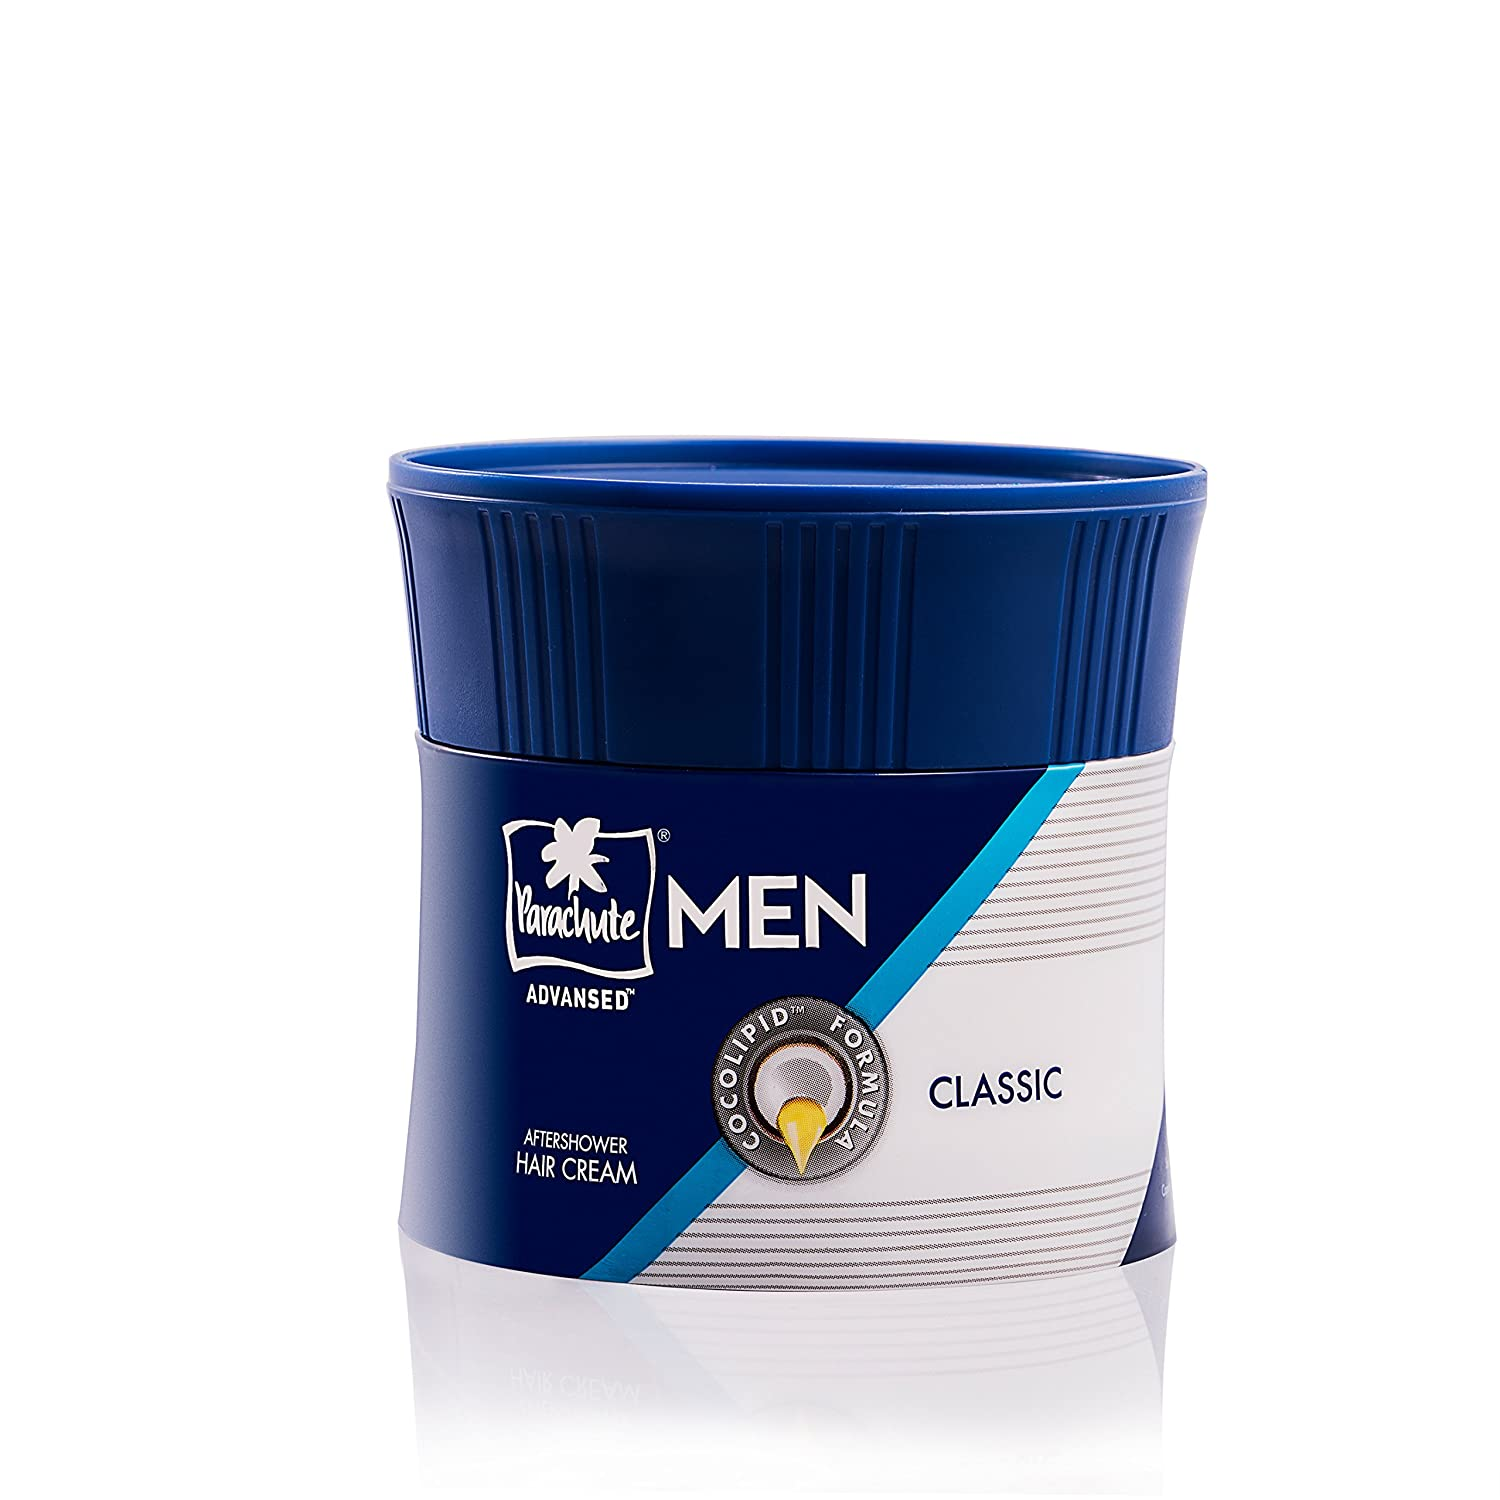 Amazon: Parachute Advansed MEN Aftershower Hair Cream Classic @ Rs.63/- (26% OFF)